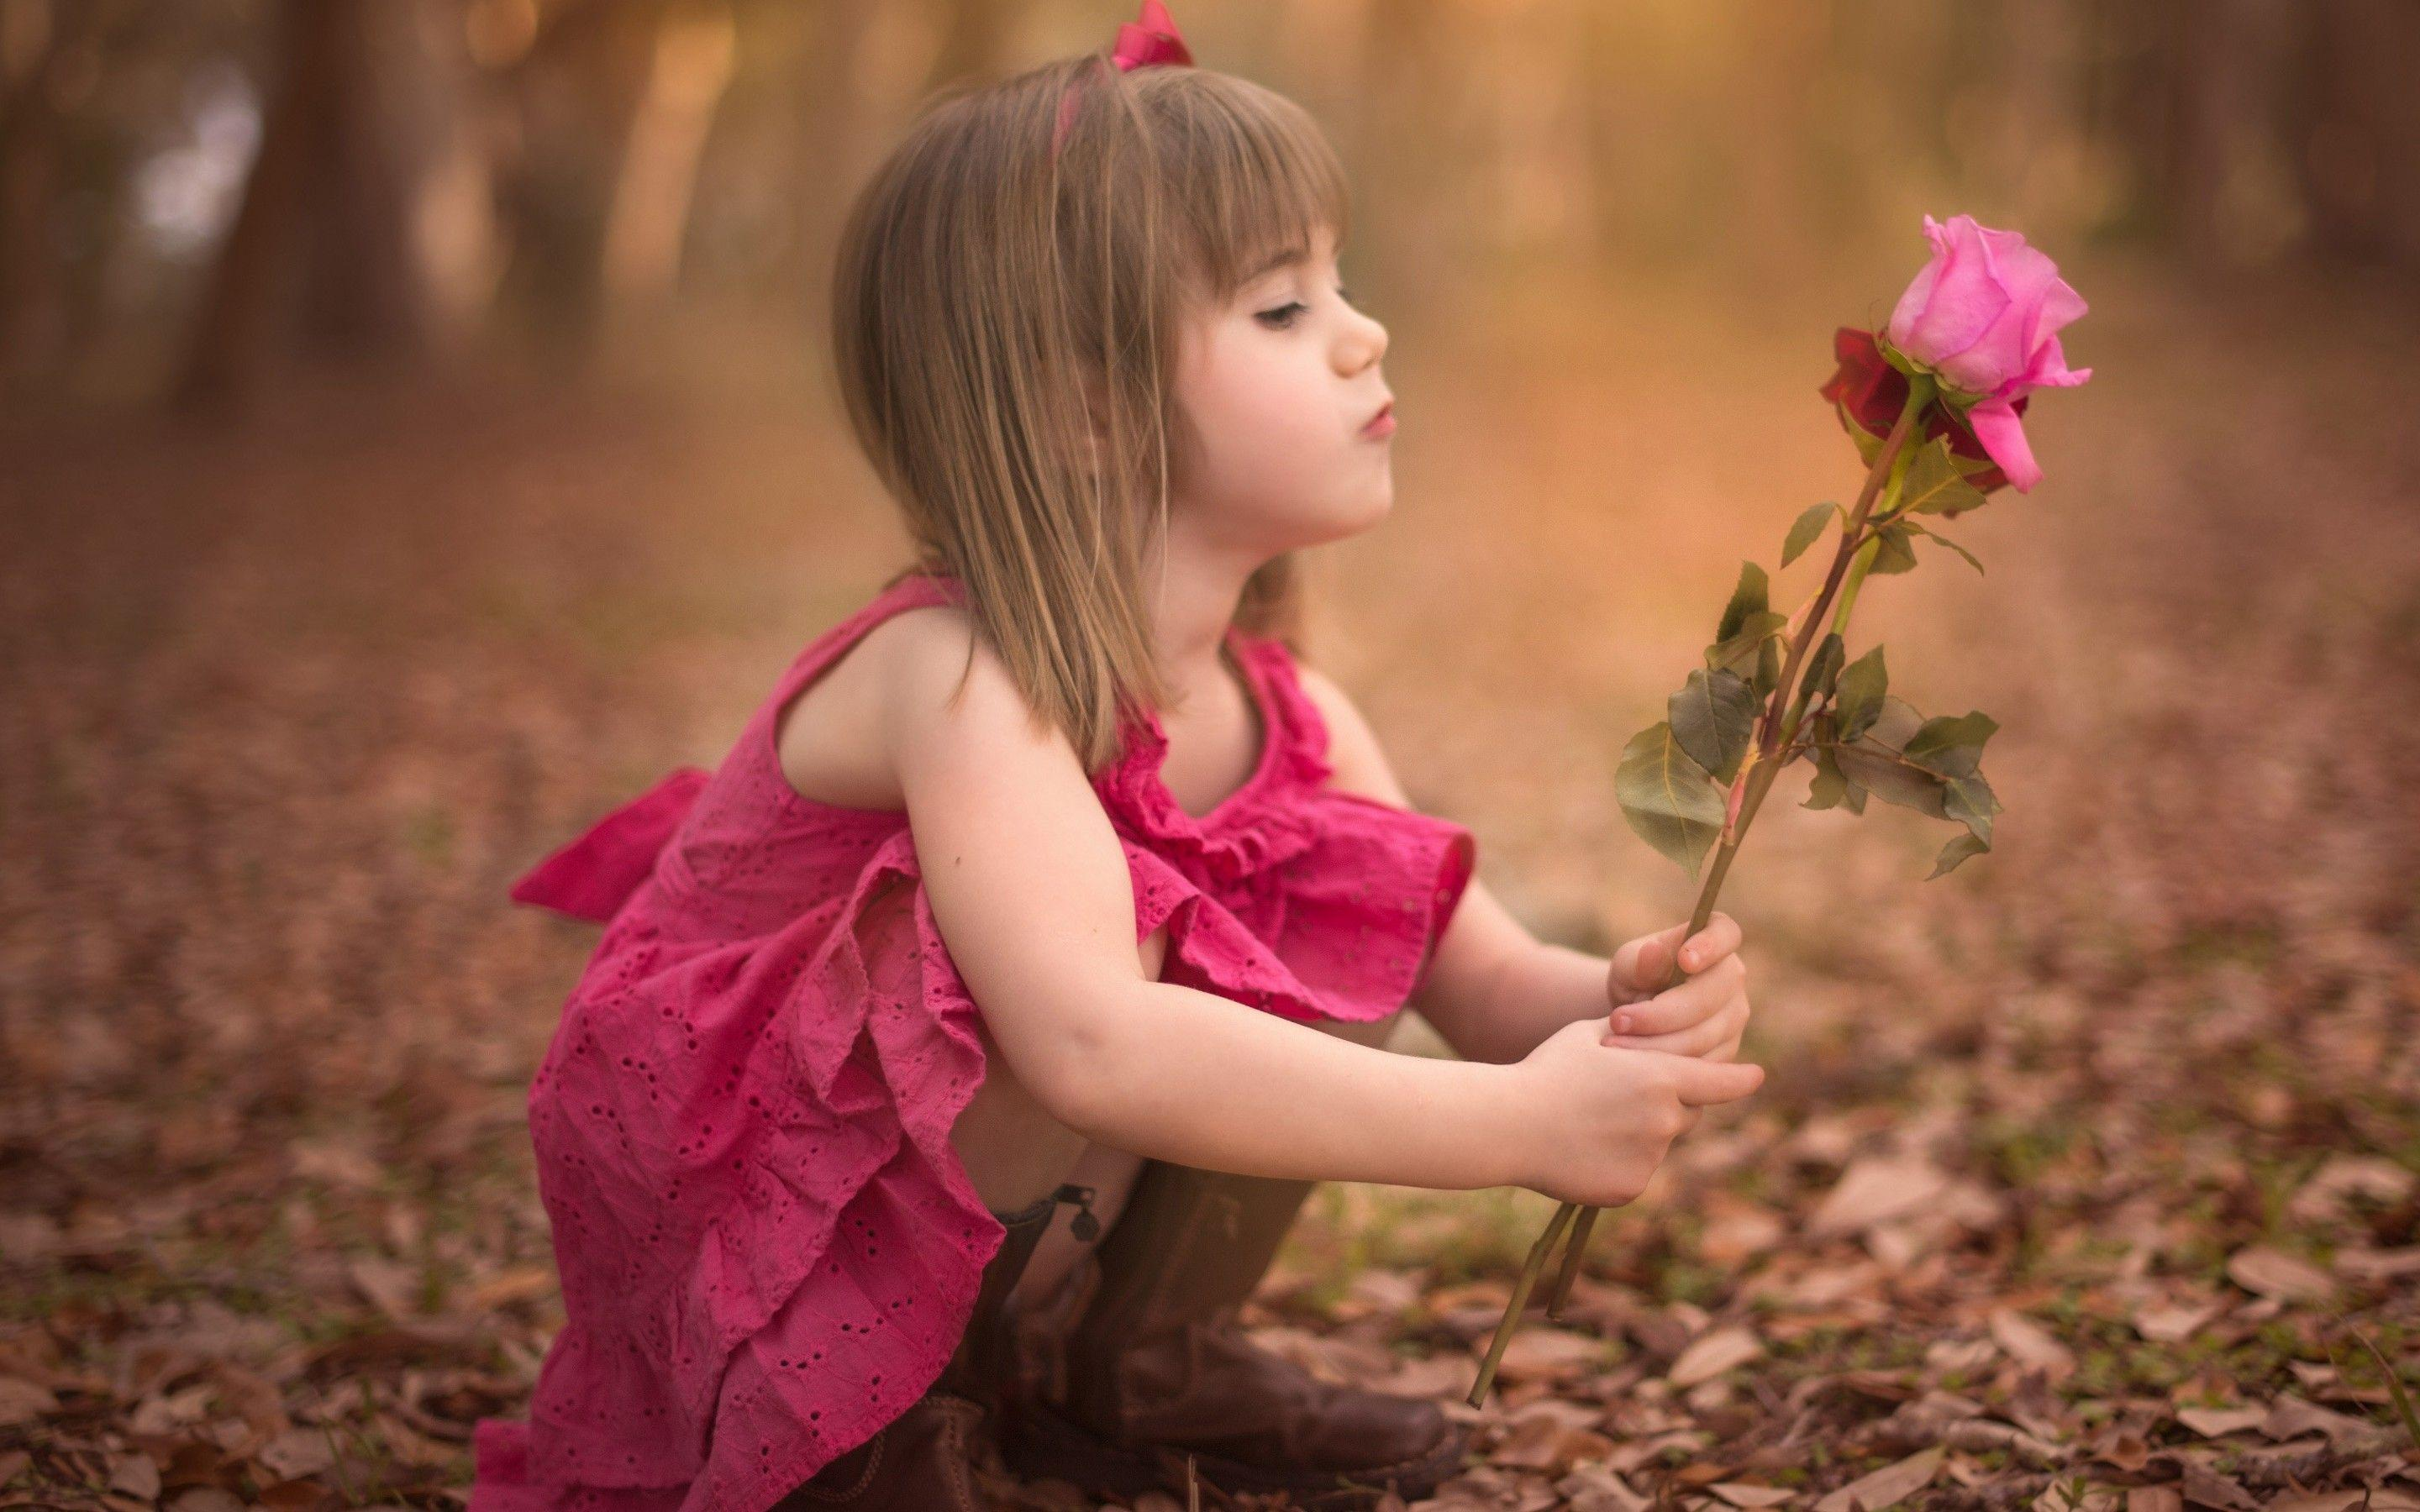 cute baby girls wallpapers - wallpaper cave